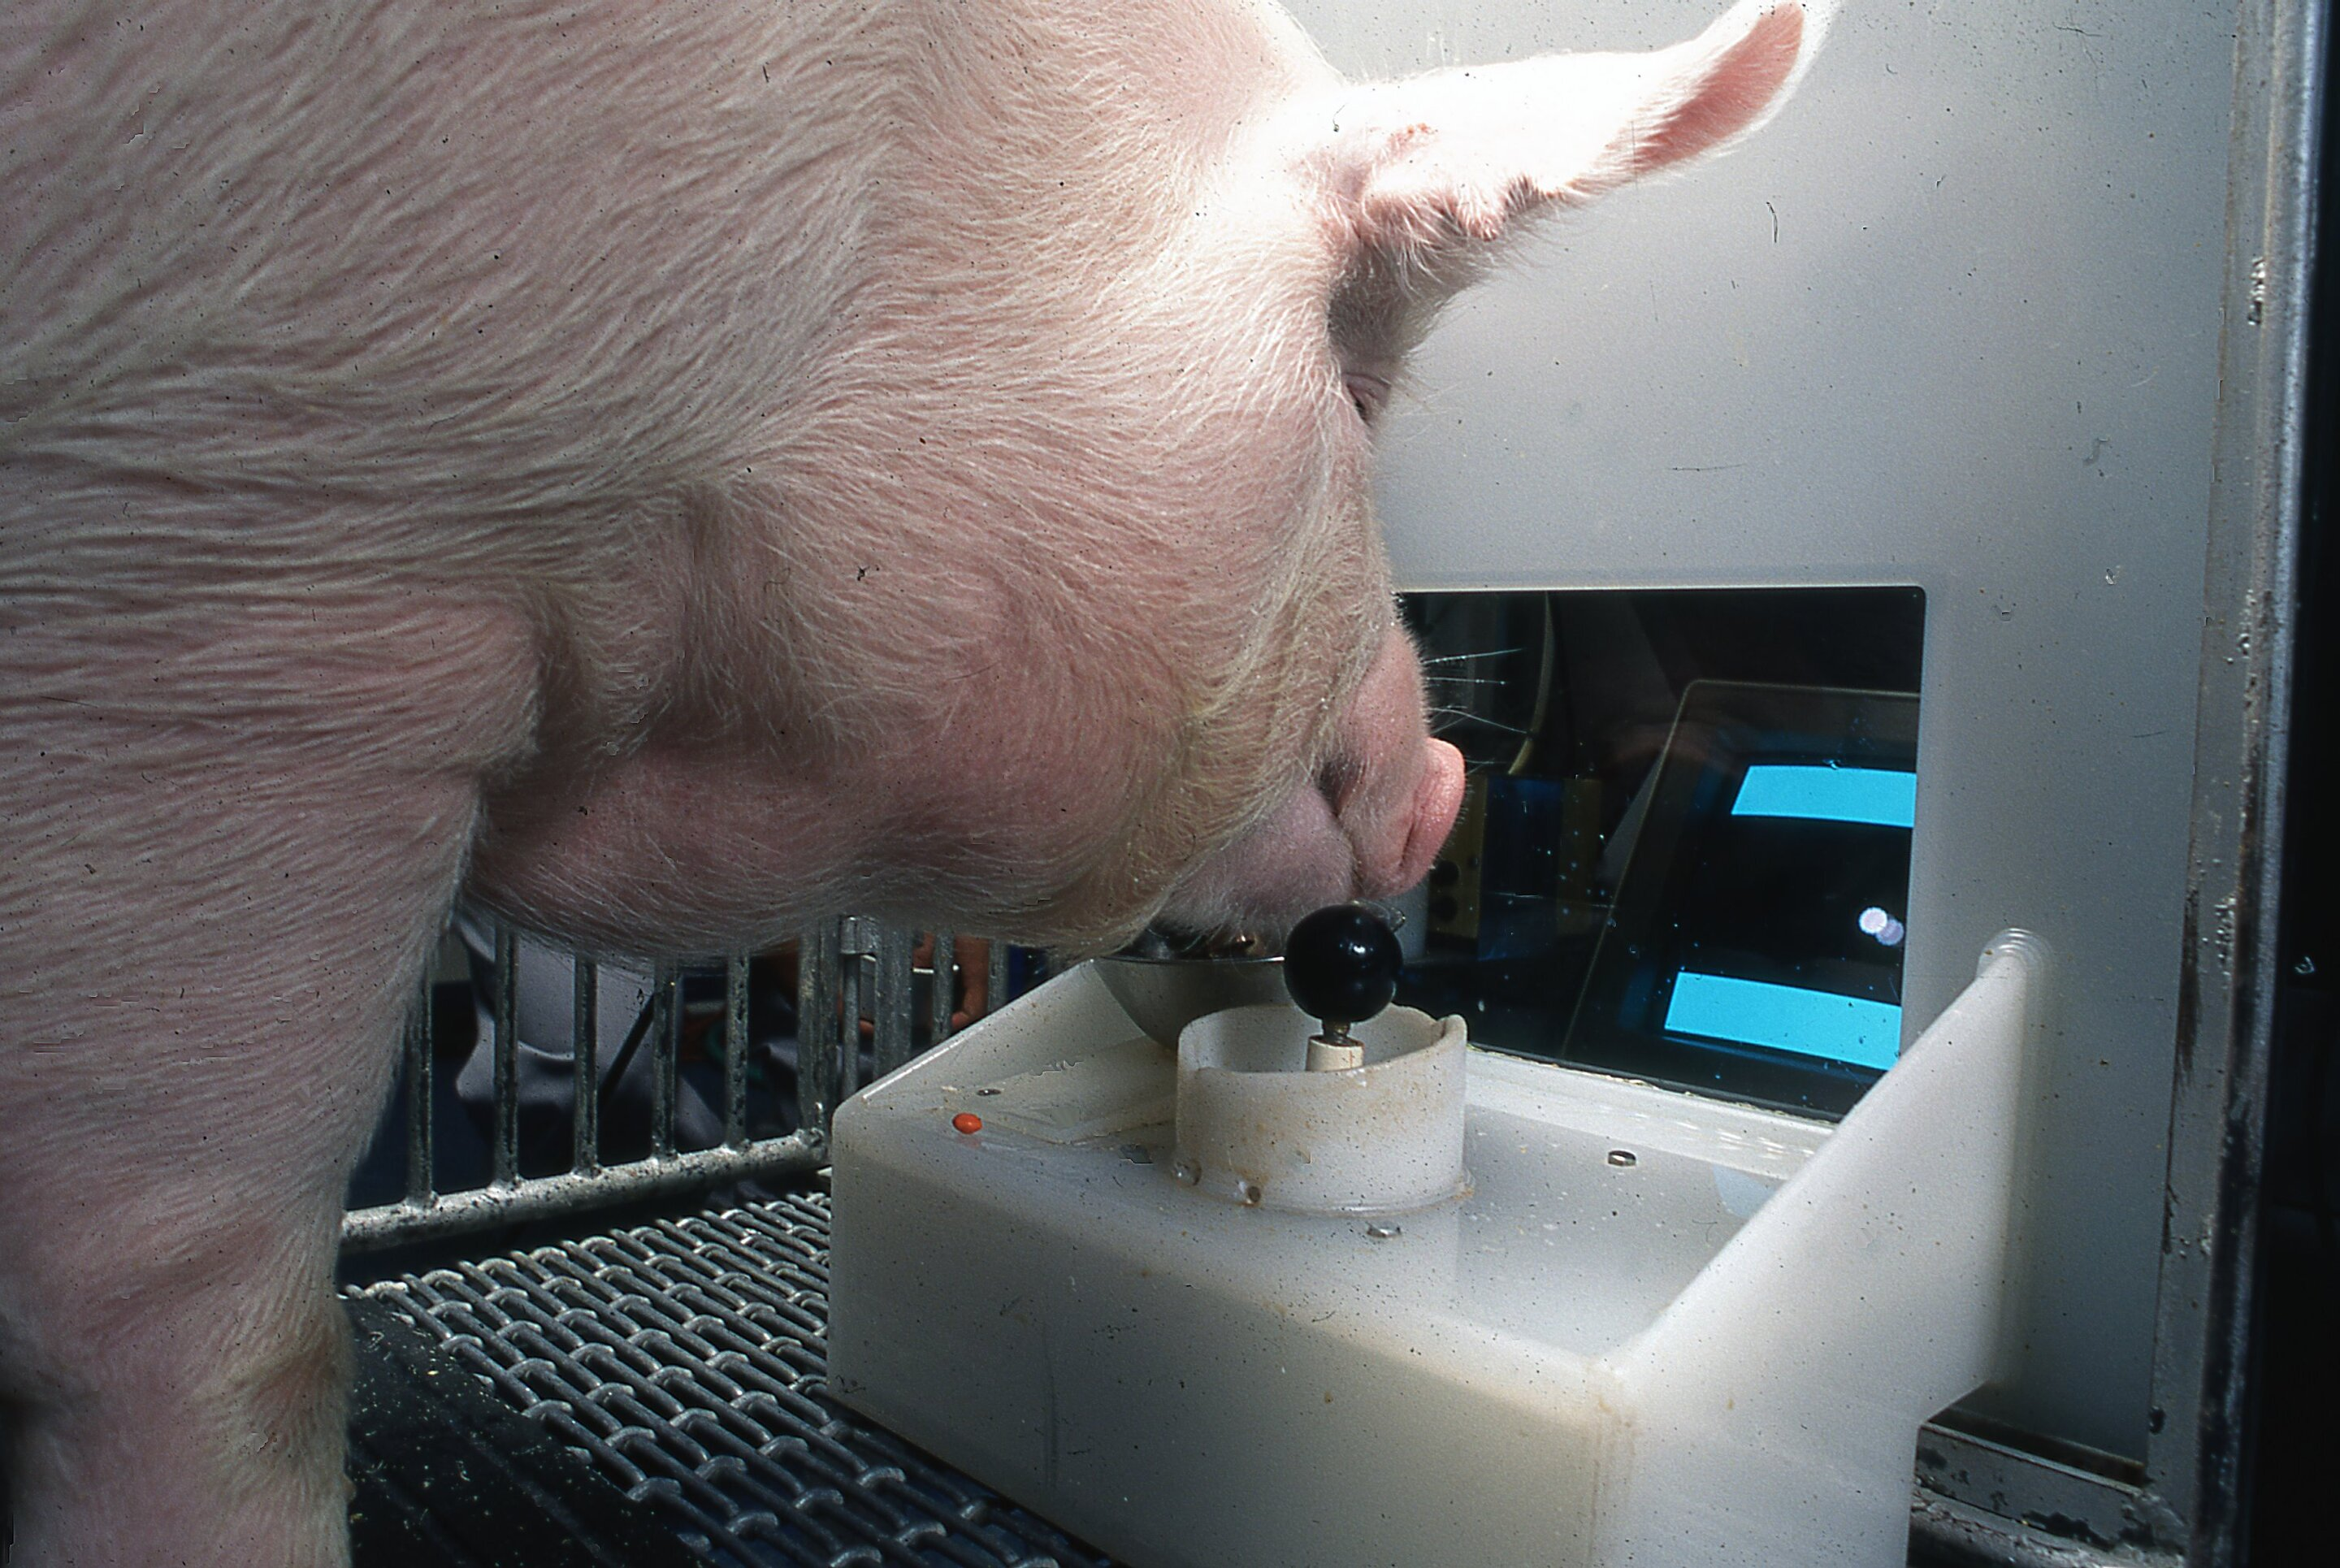 Pigs show potential for 'remarkable' level of behavioral, mental flexibility in new study